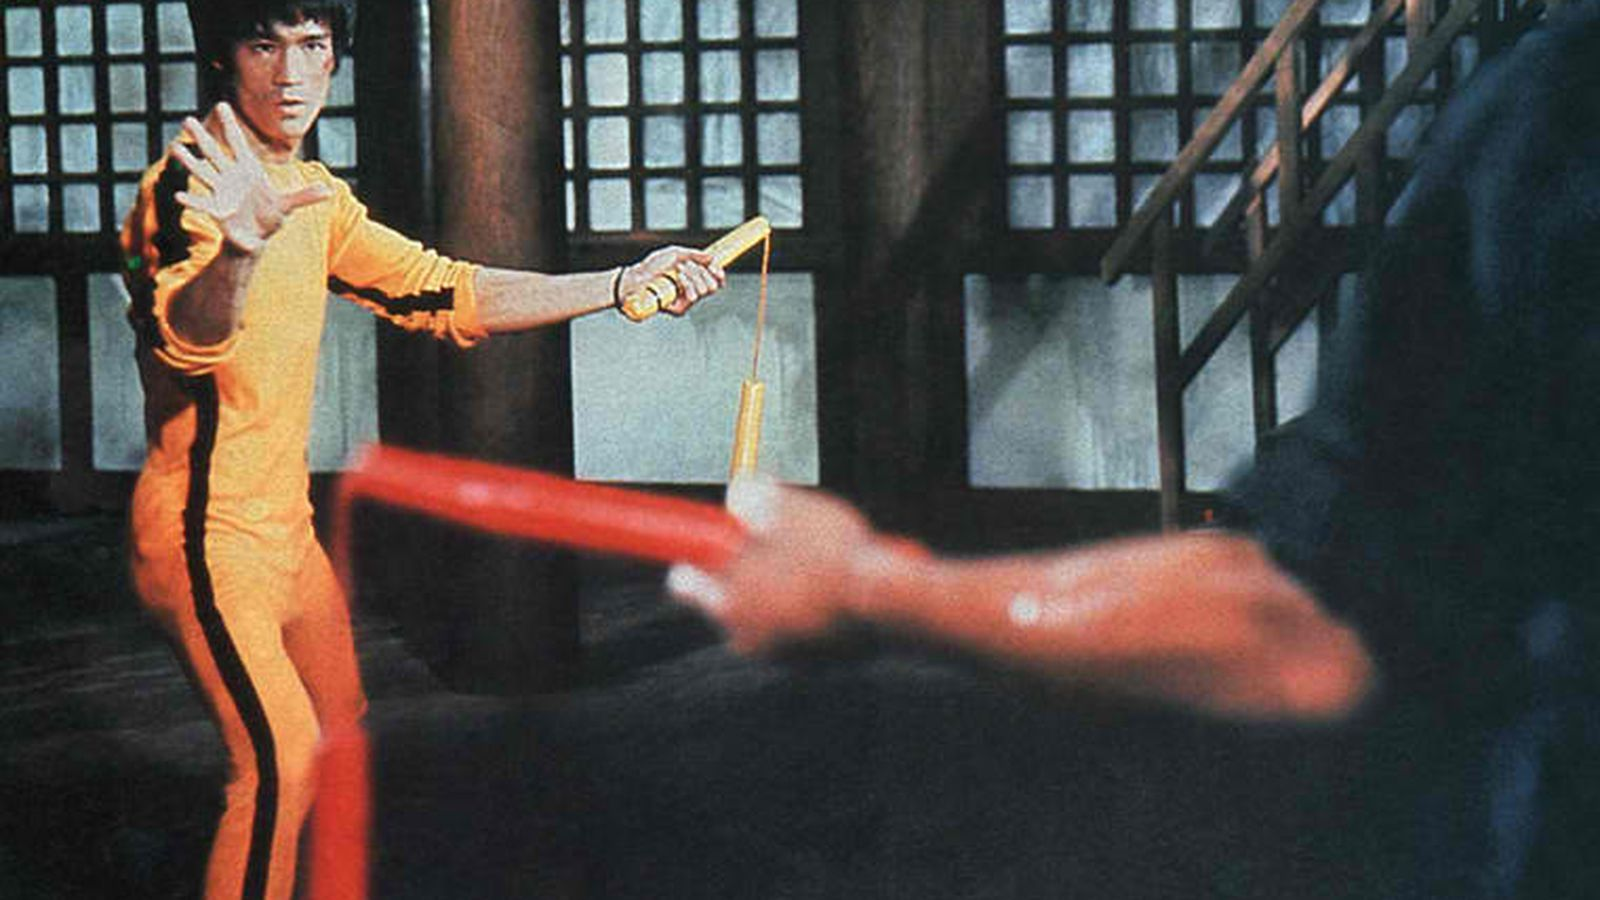 Game of Death 2 Bruce Lee Soundtrack - YouTube - video ...